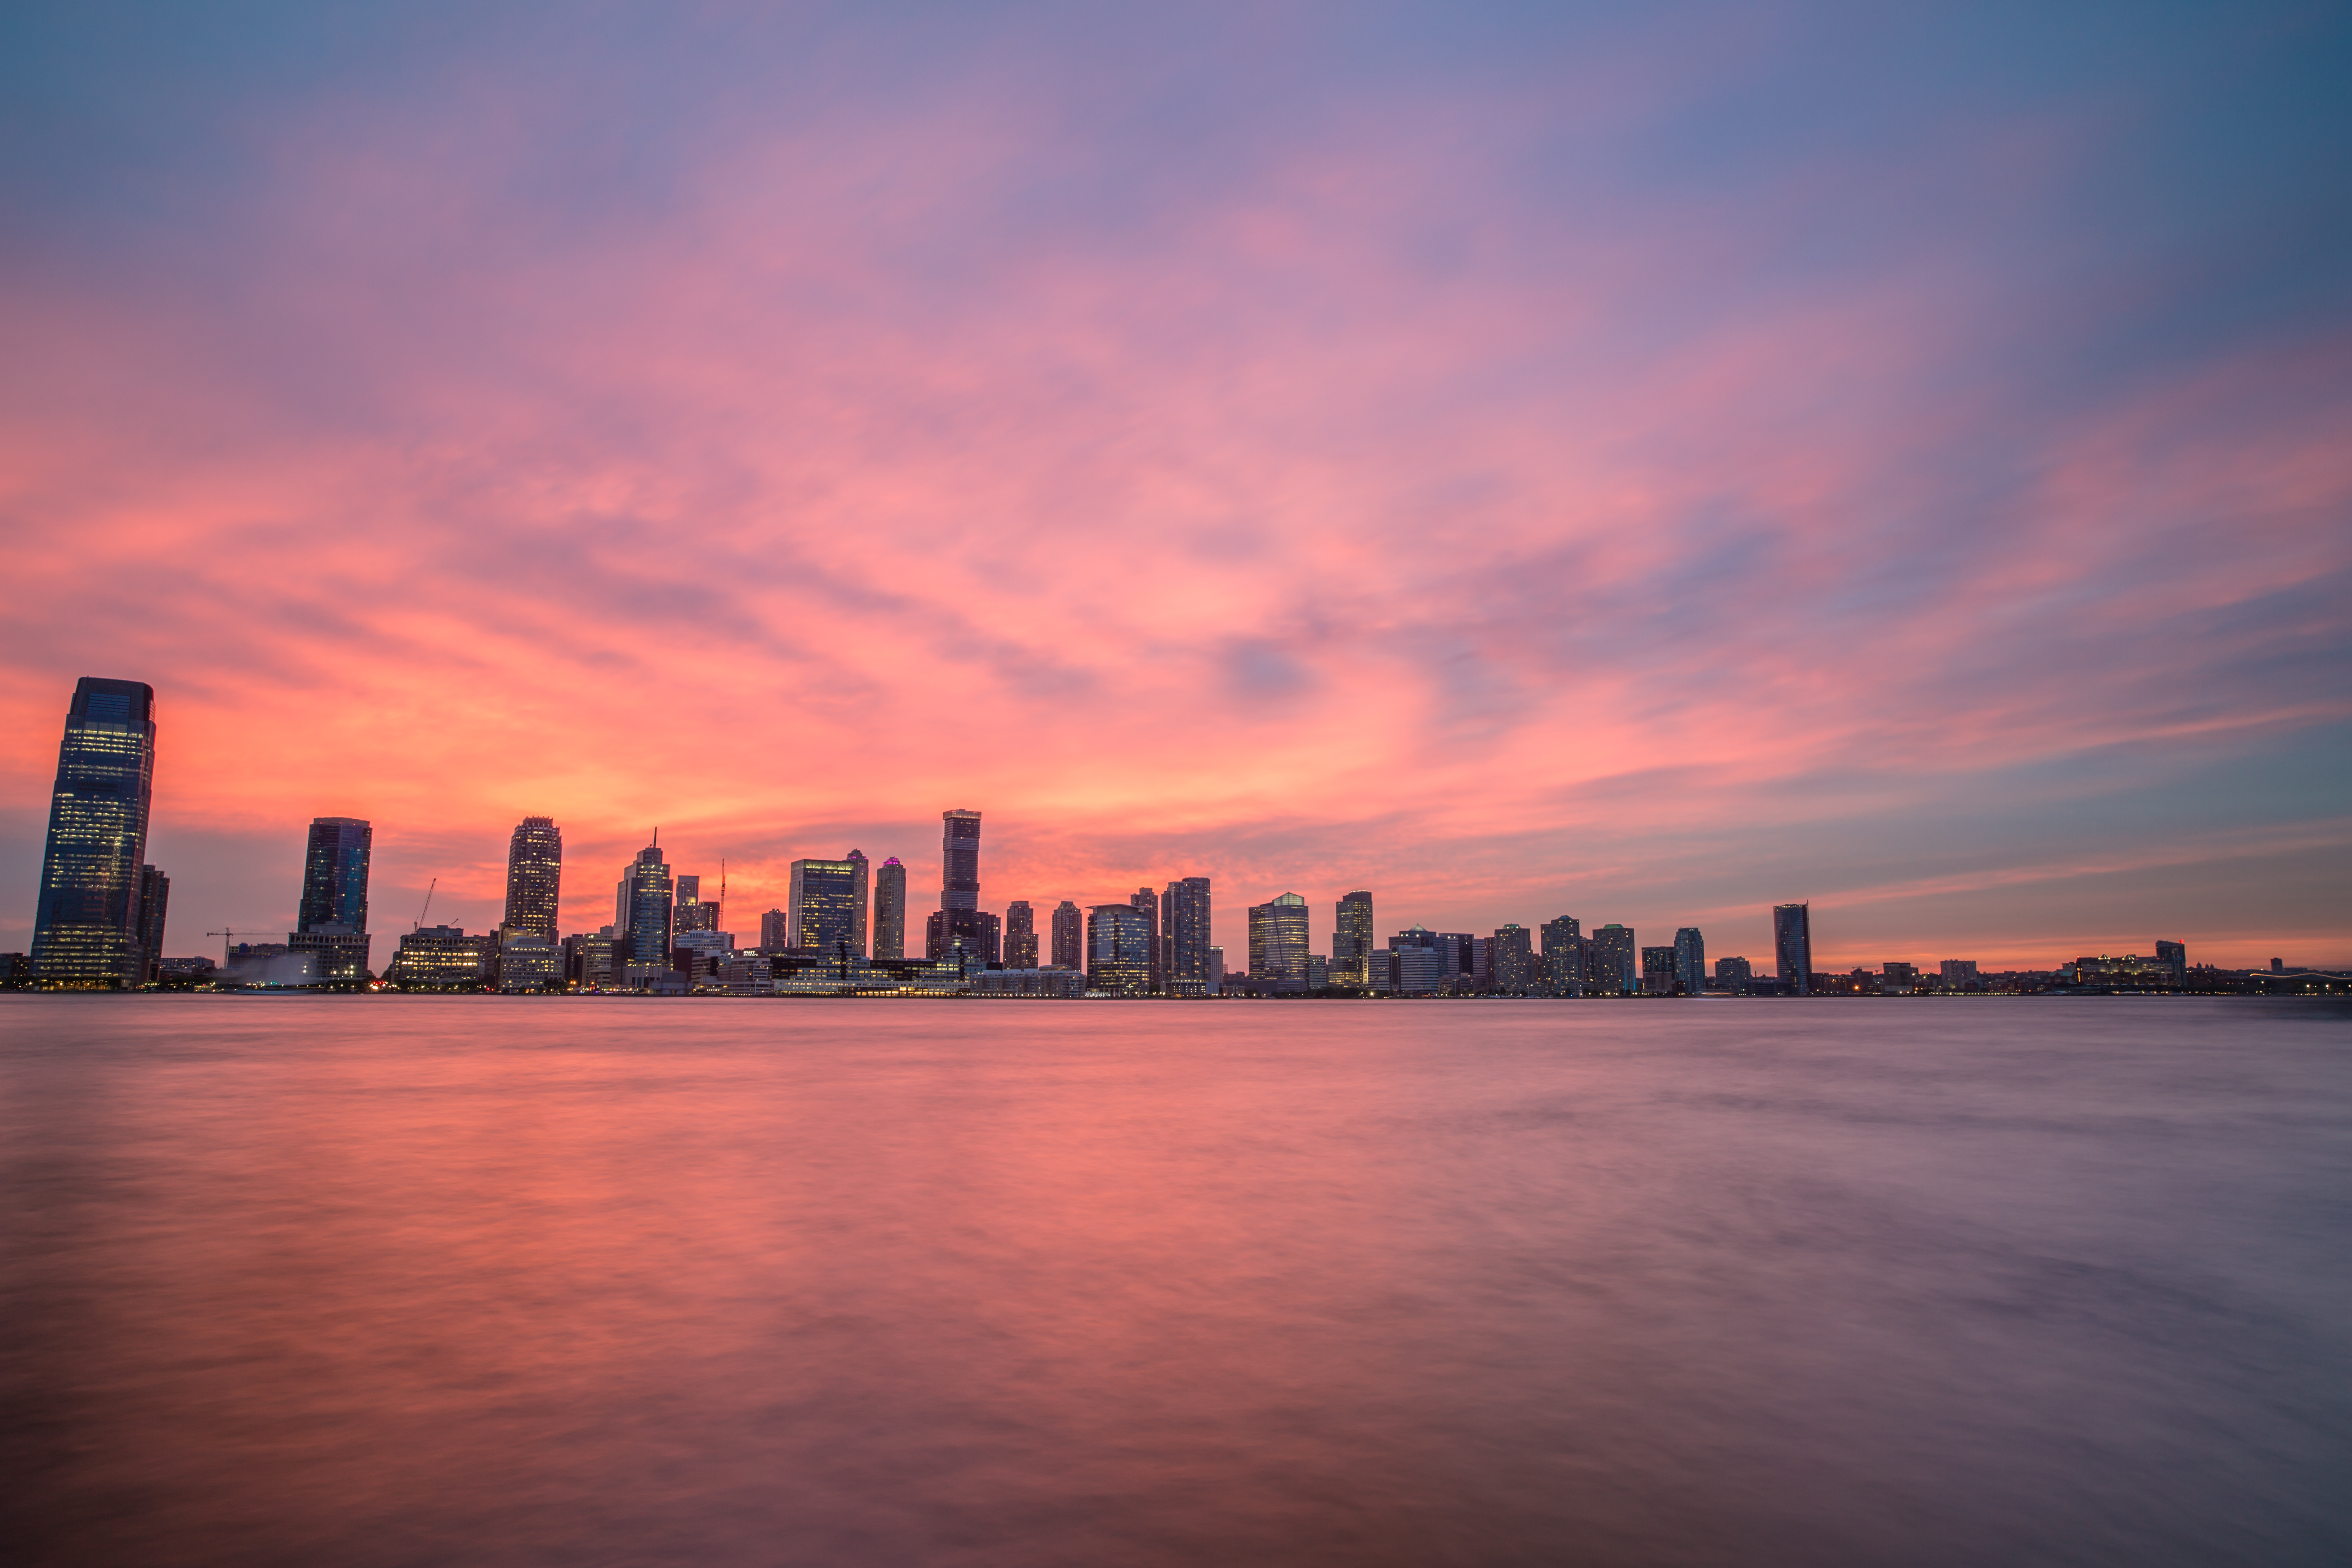 Pink sunset over Jersey city	 example image 1